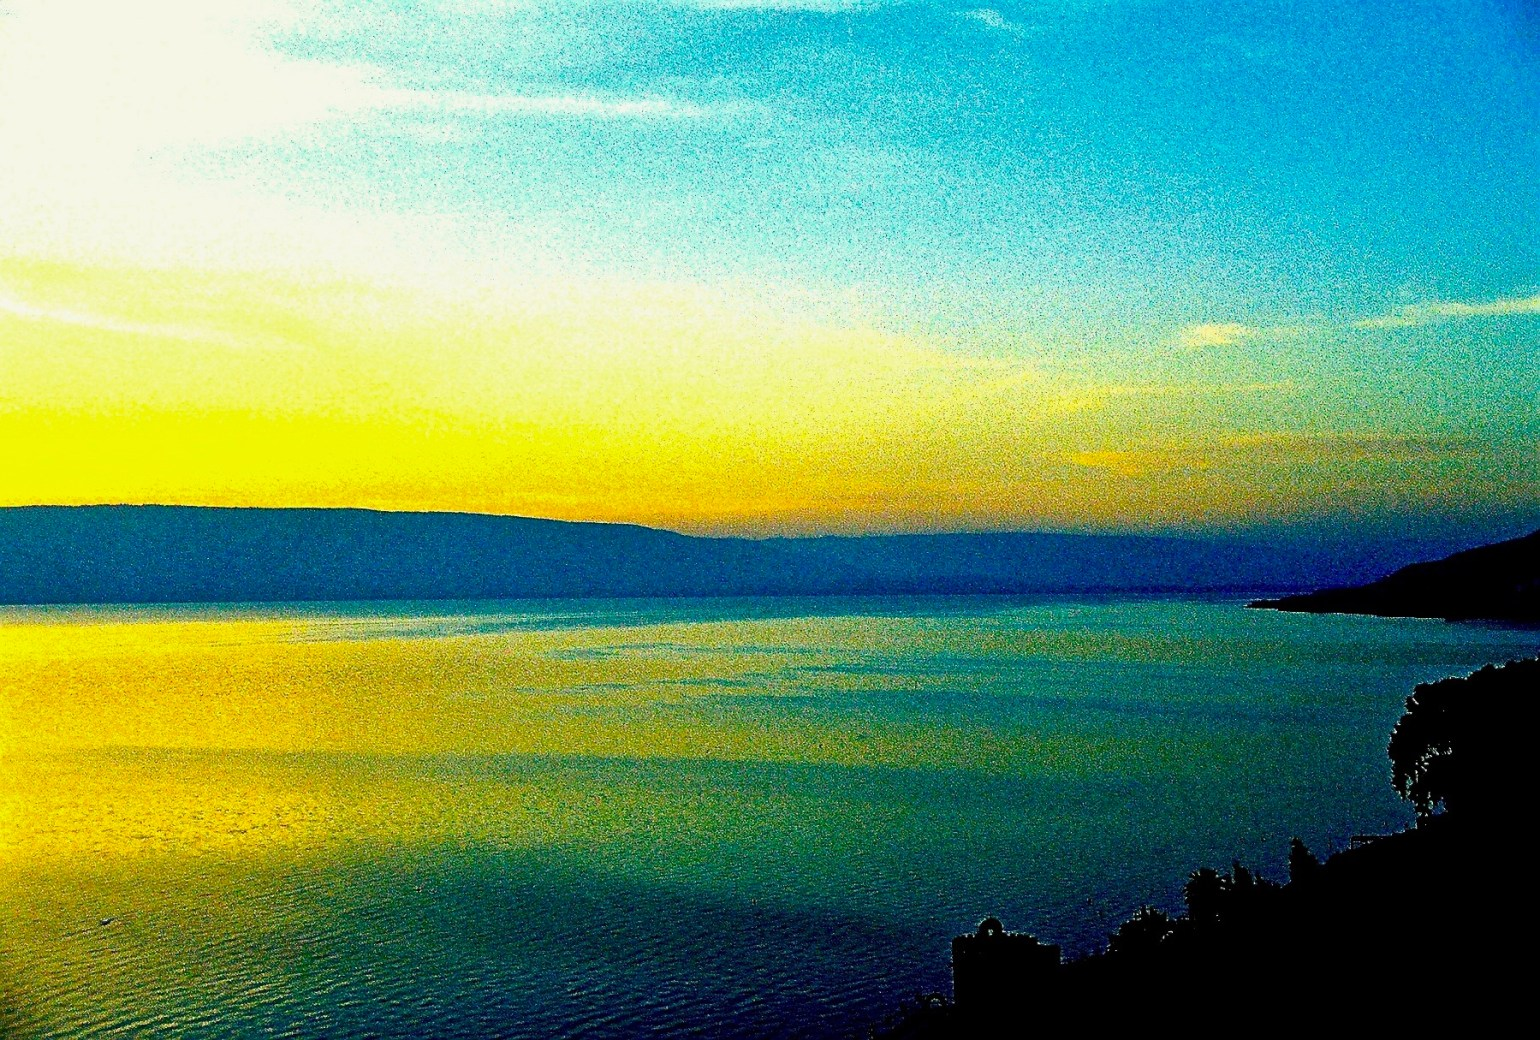 Sea of Galilee - 1